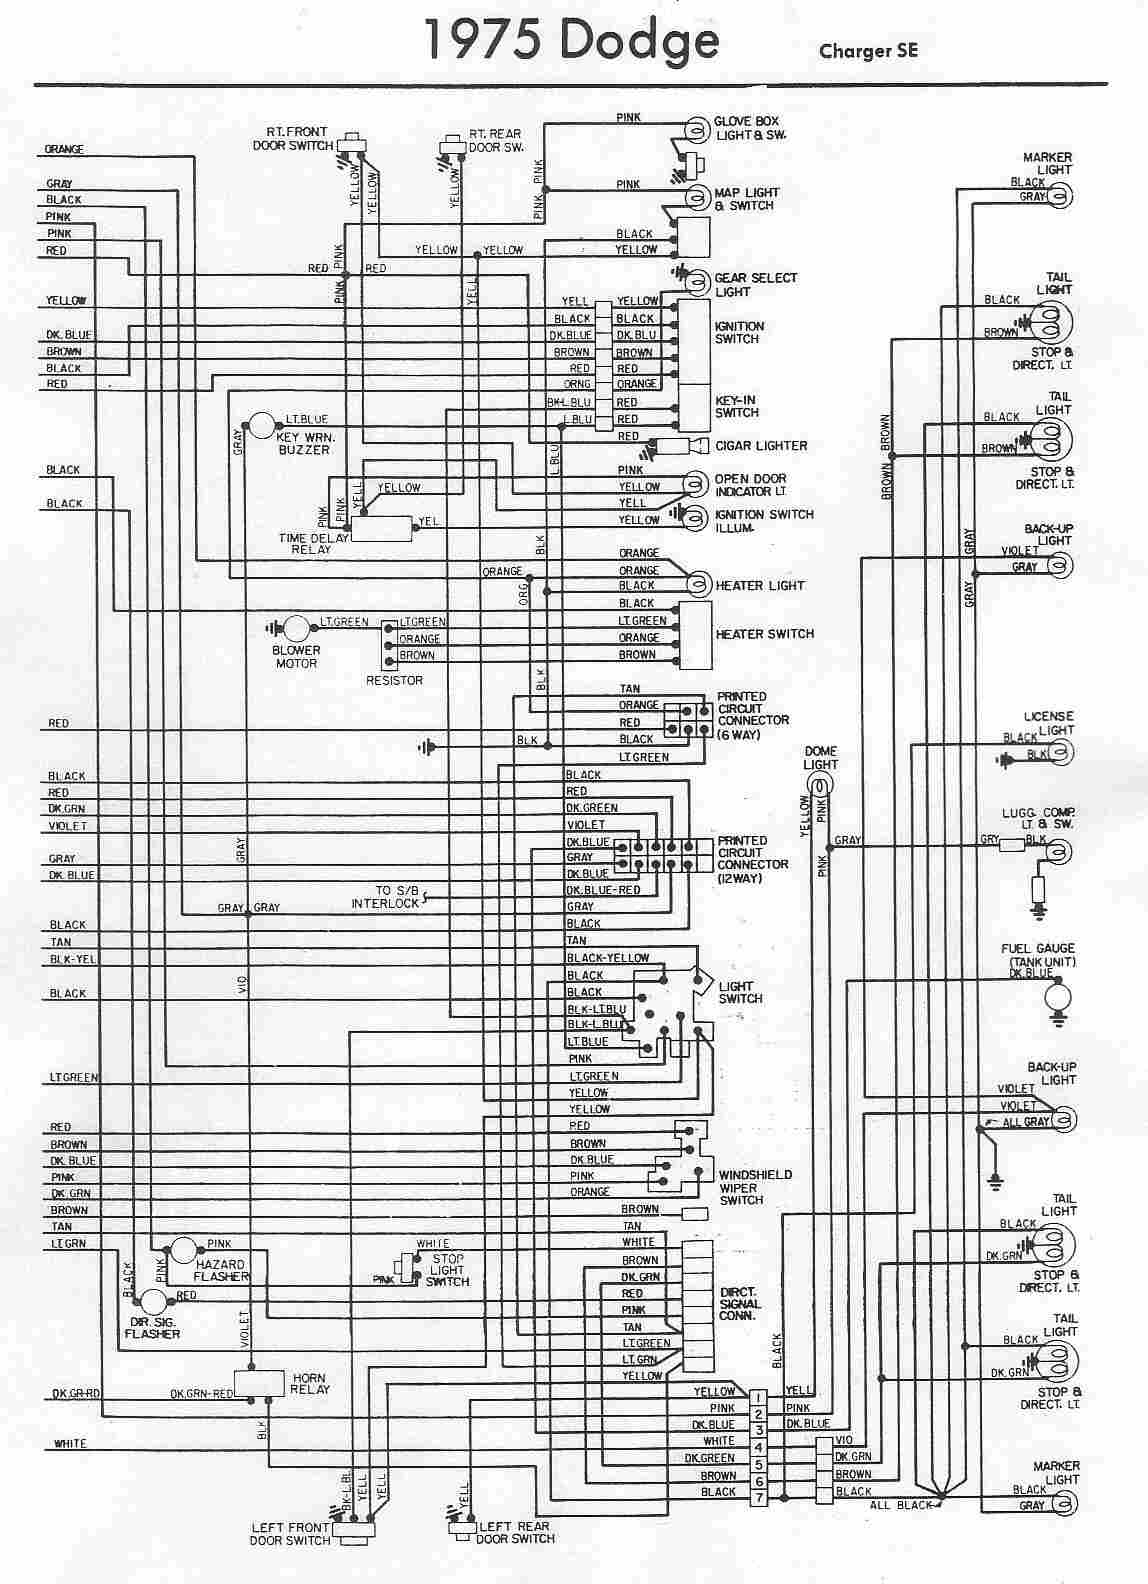 73 Datsun 620 Wiring Diagram Schematic Best And Letter Suzuki Carry